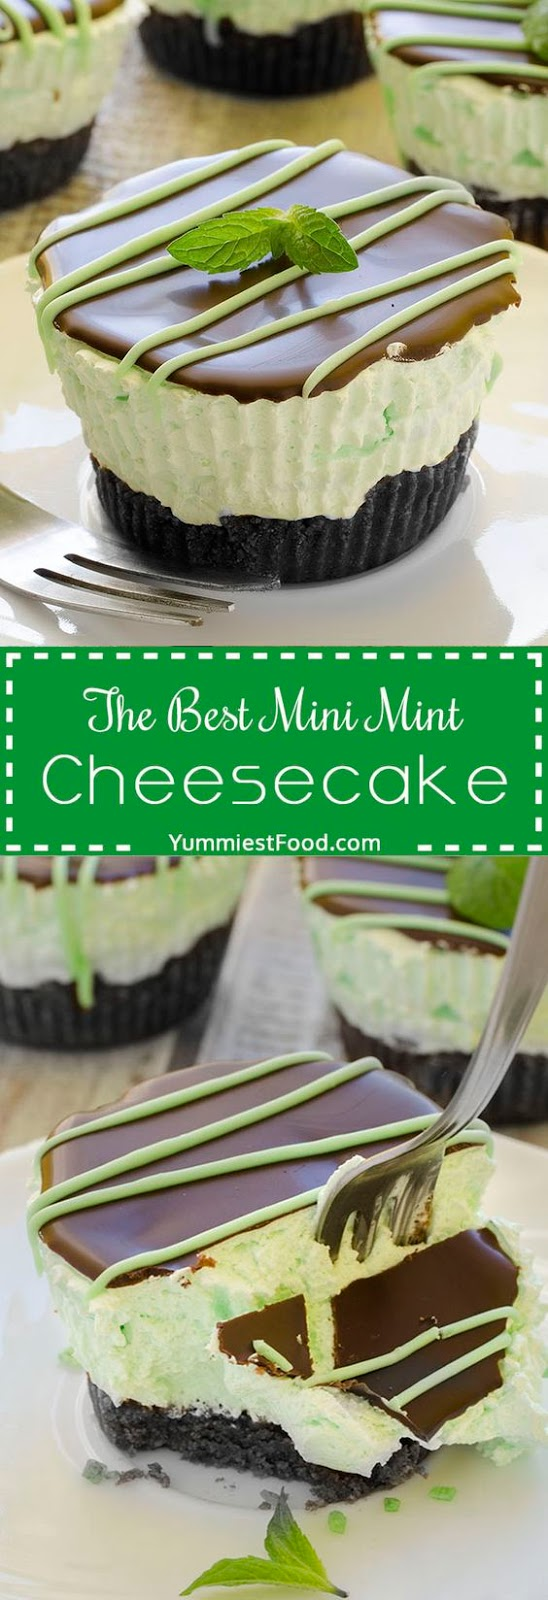 The Best Mini Mint Cheesecake